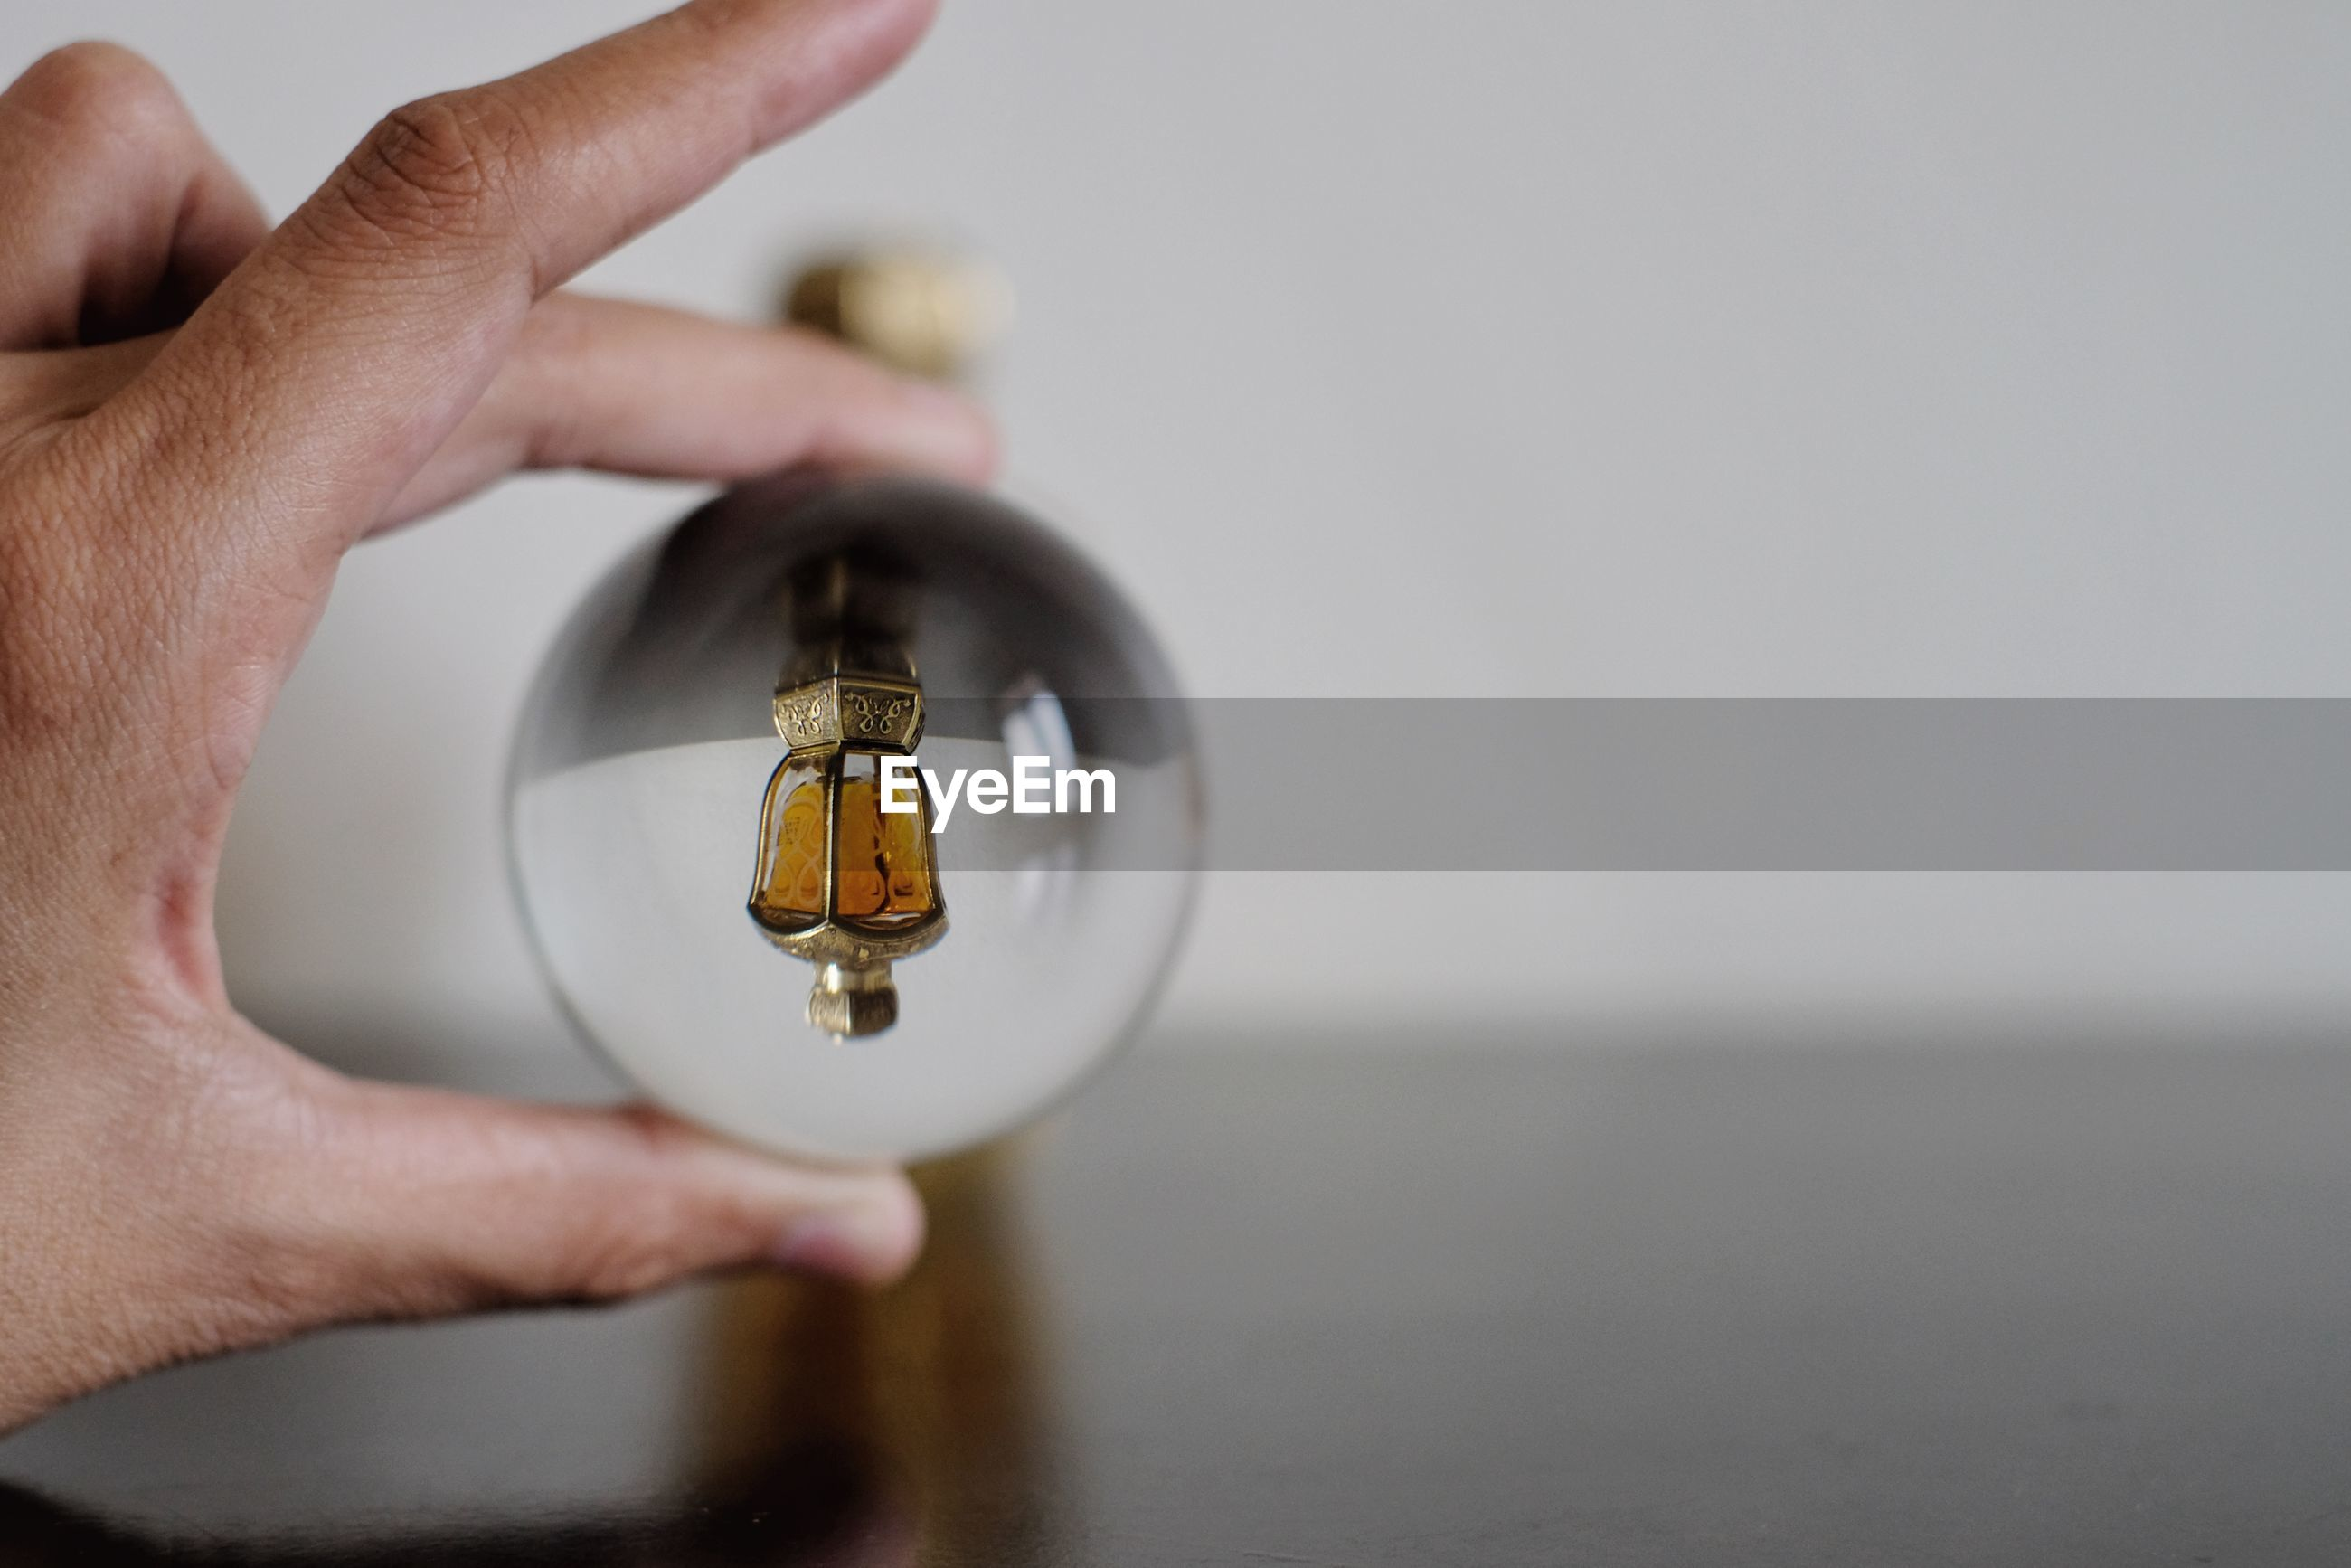 Upside down image of perfume bottle reflecting in crystal ball held by hand